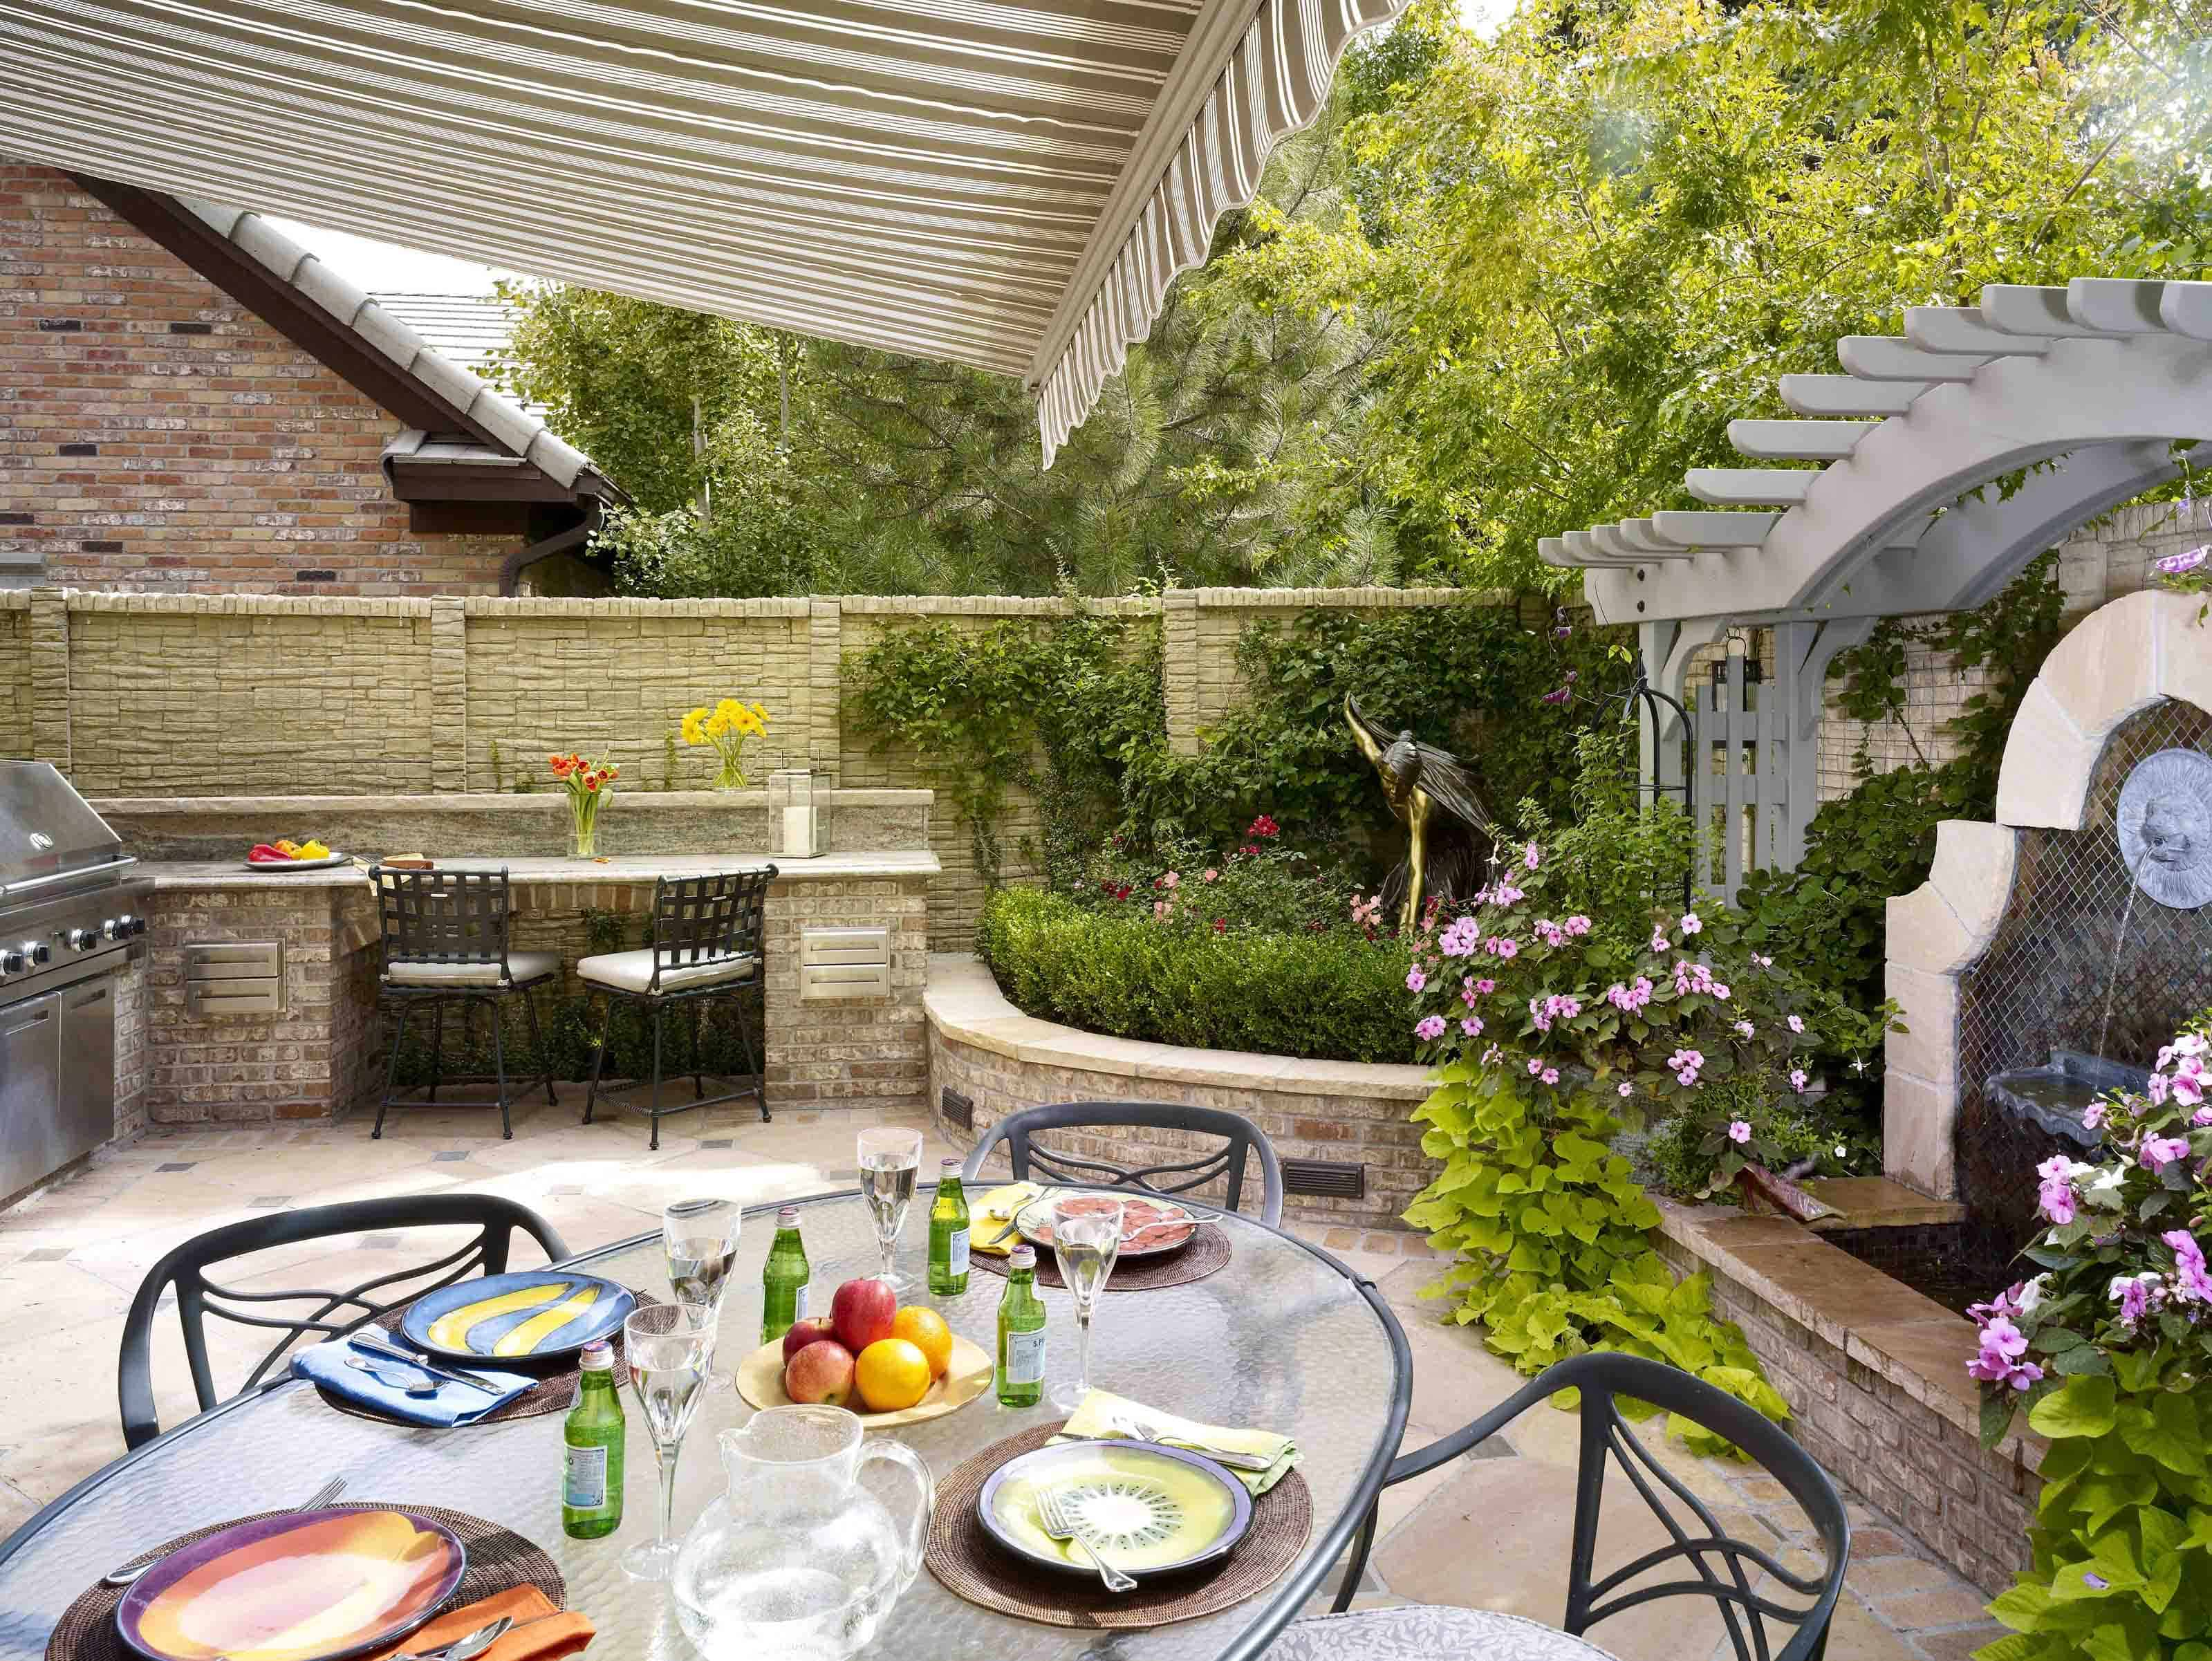 The Top Outdoor Living Trends for 2012